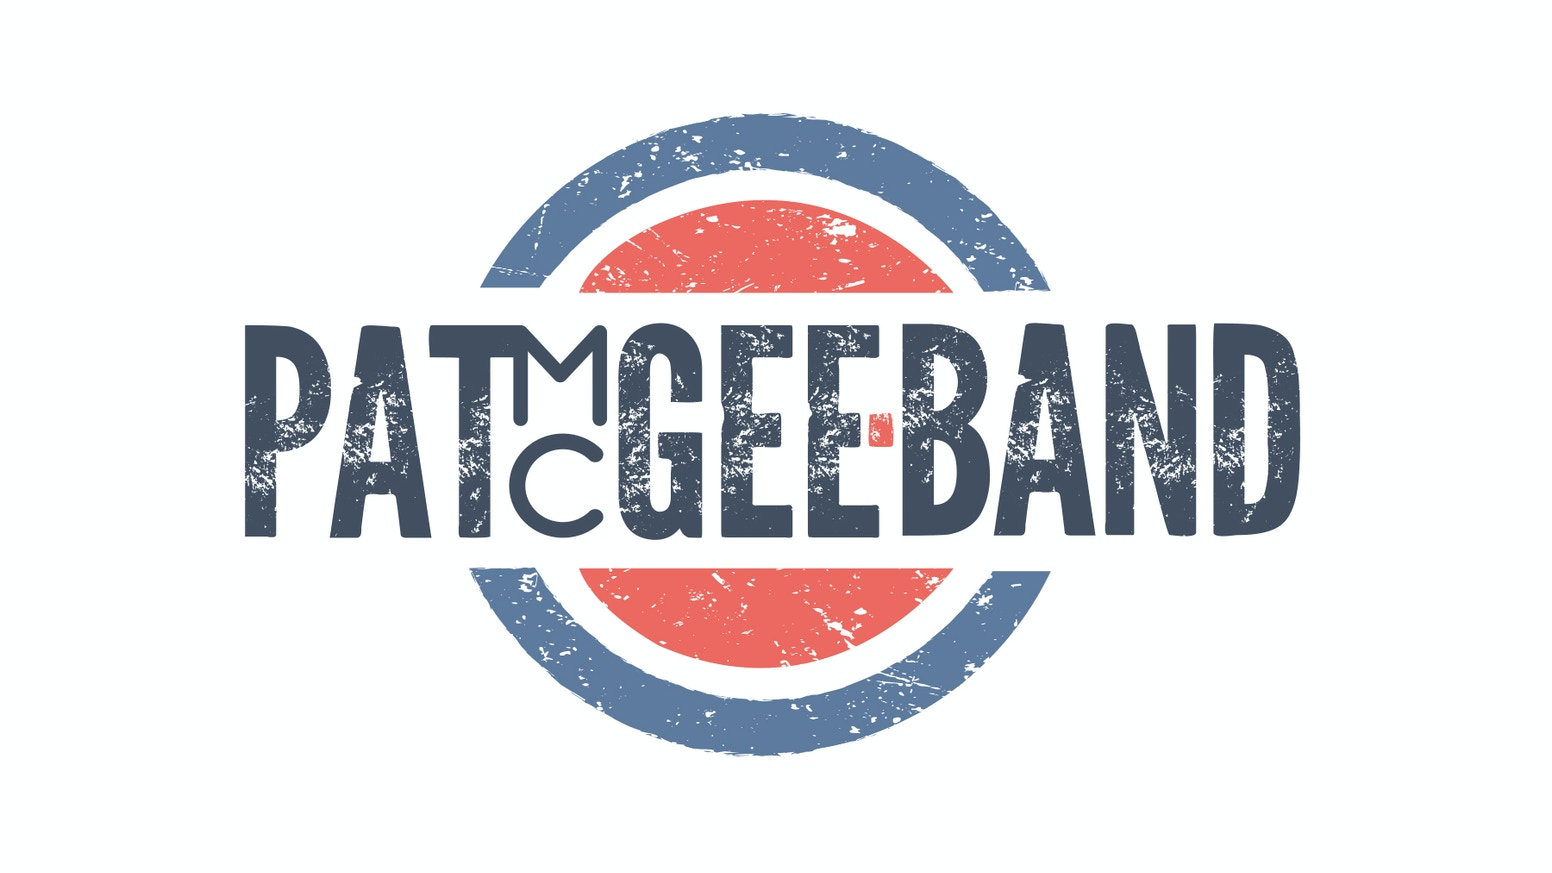 Pat McGee Band (Reunion Album) by pat mcgee — Kickstarter